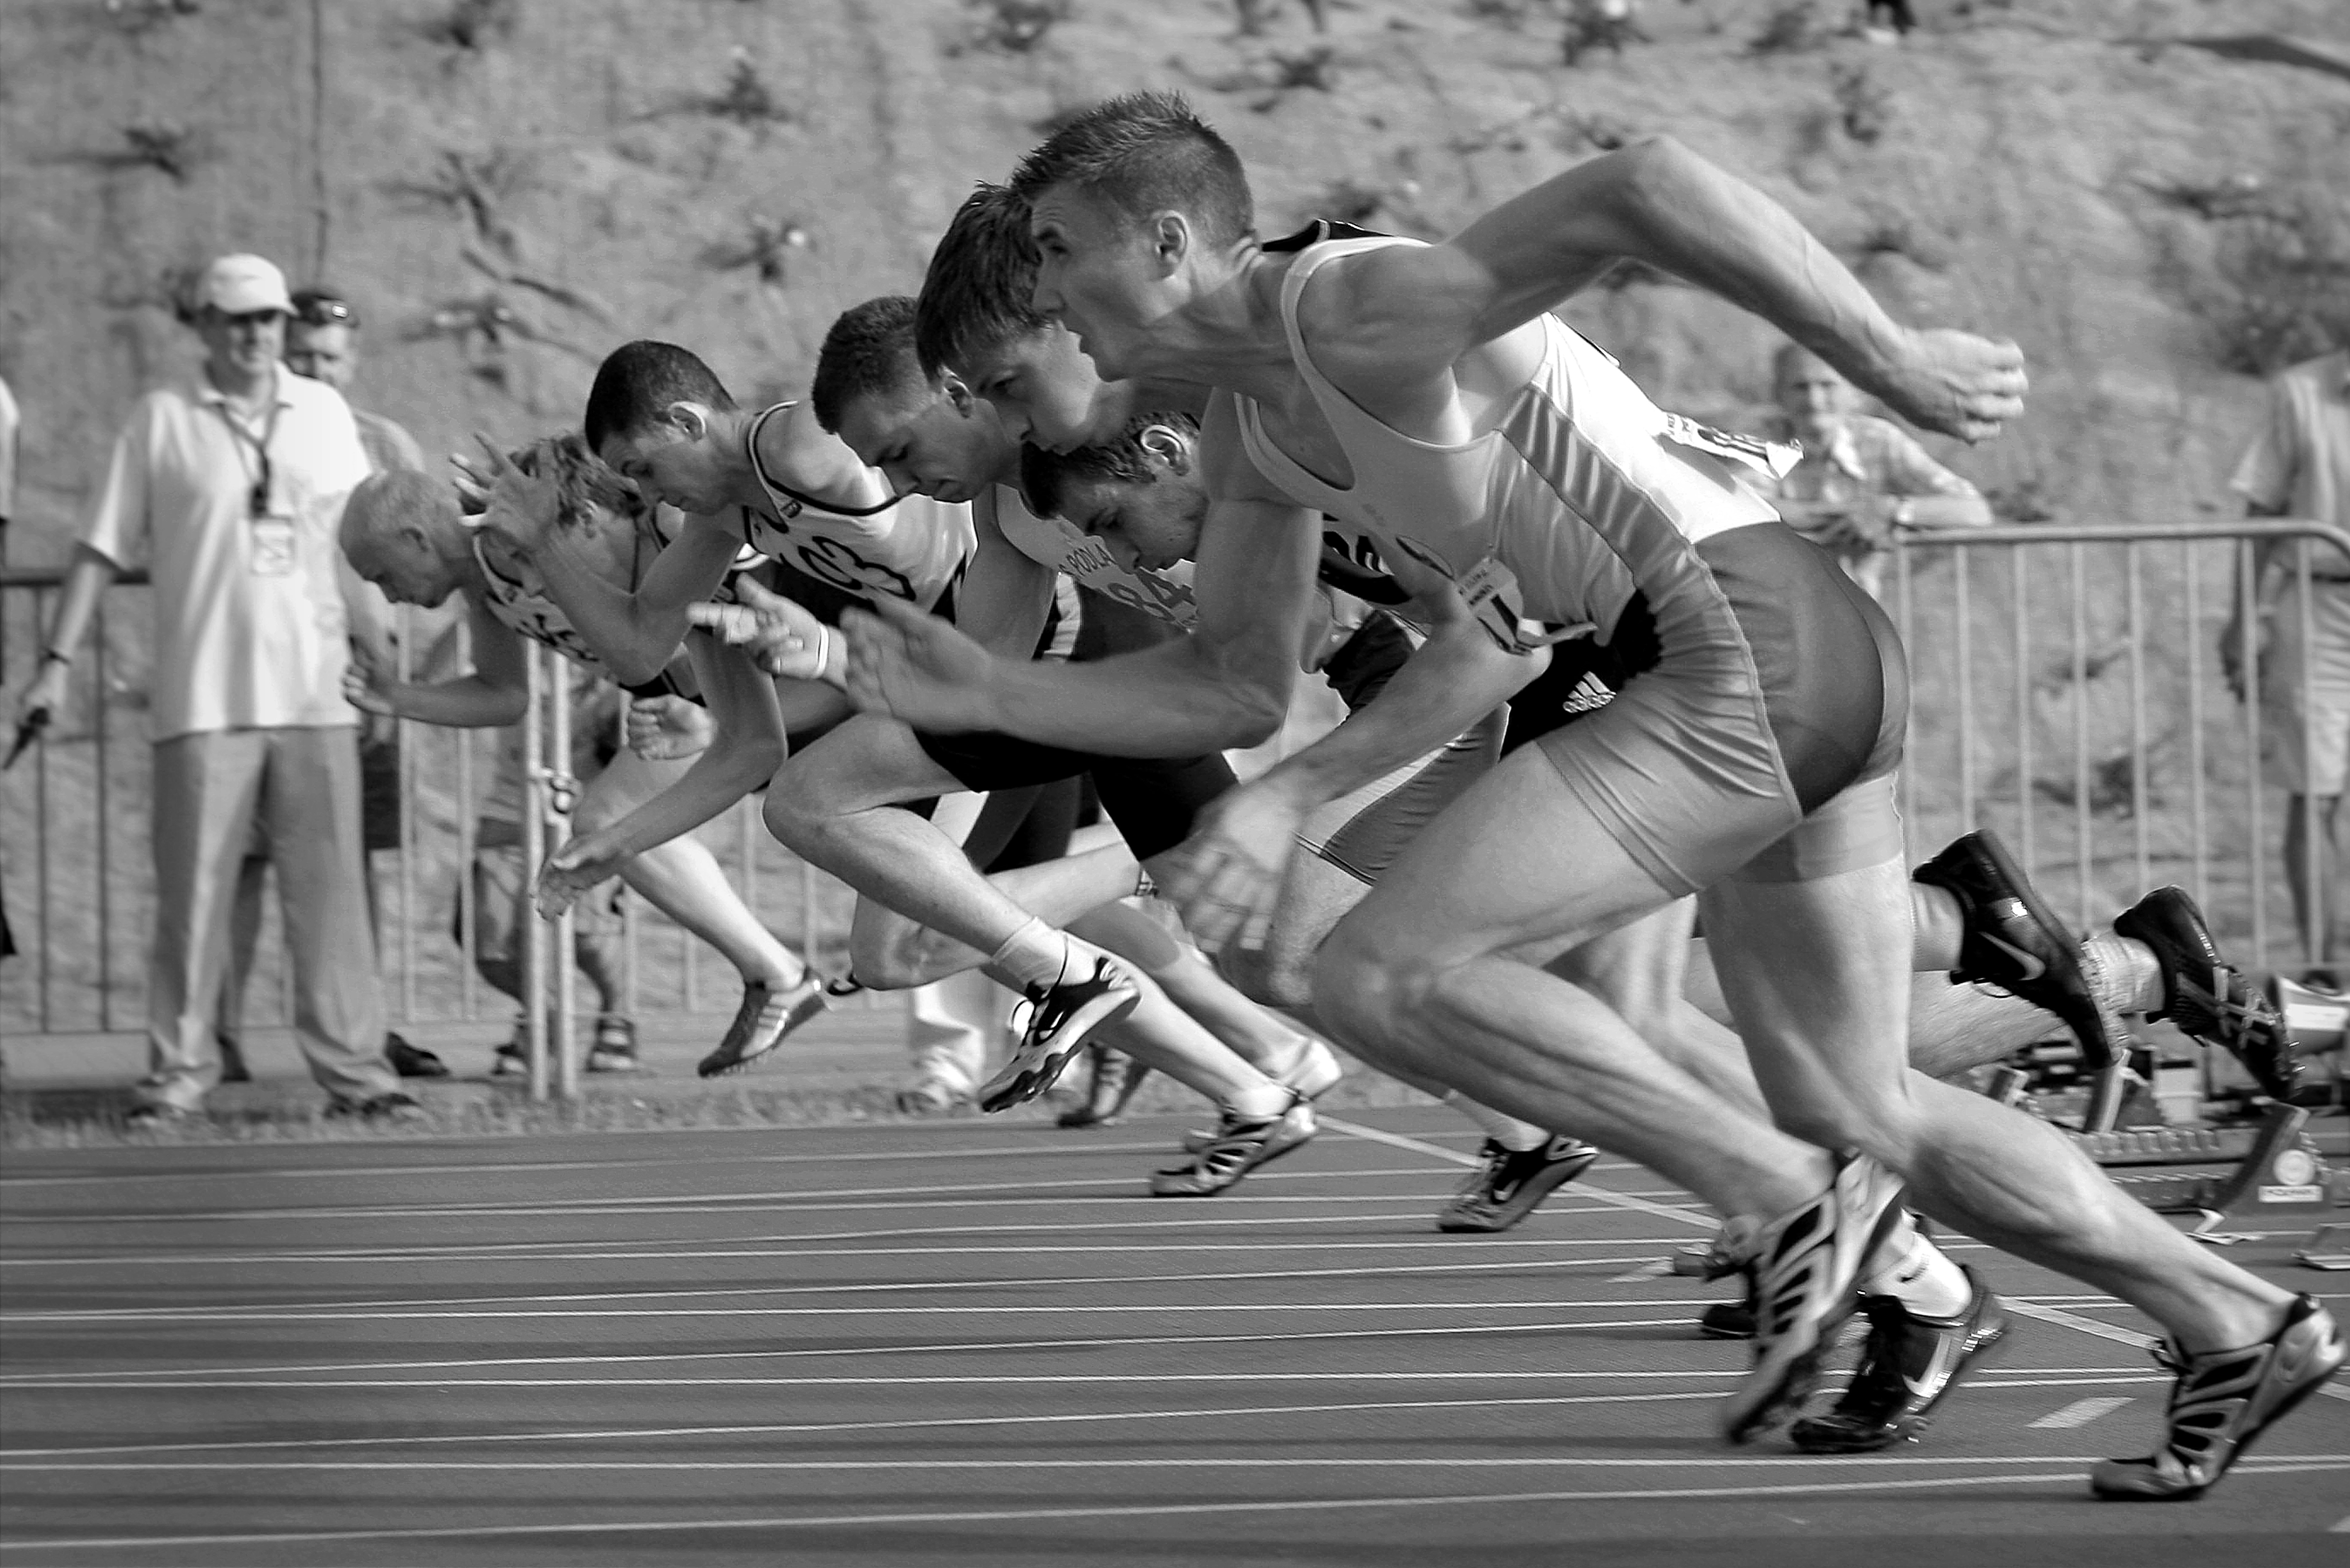 athletes on a race in black and white